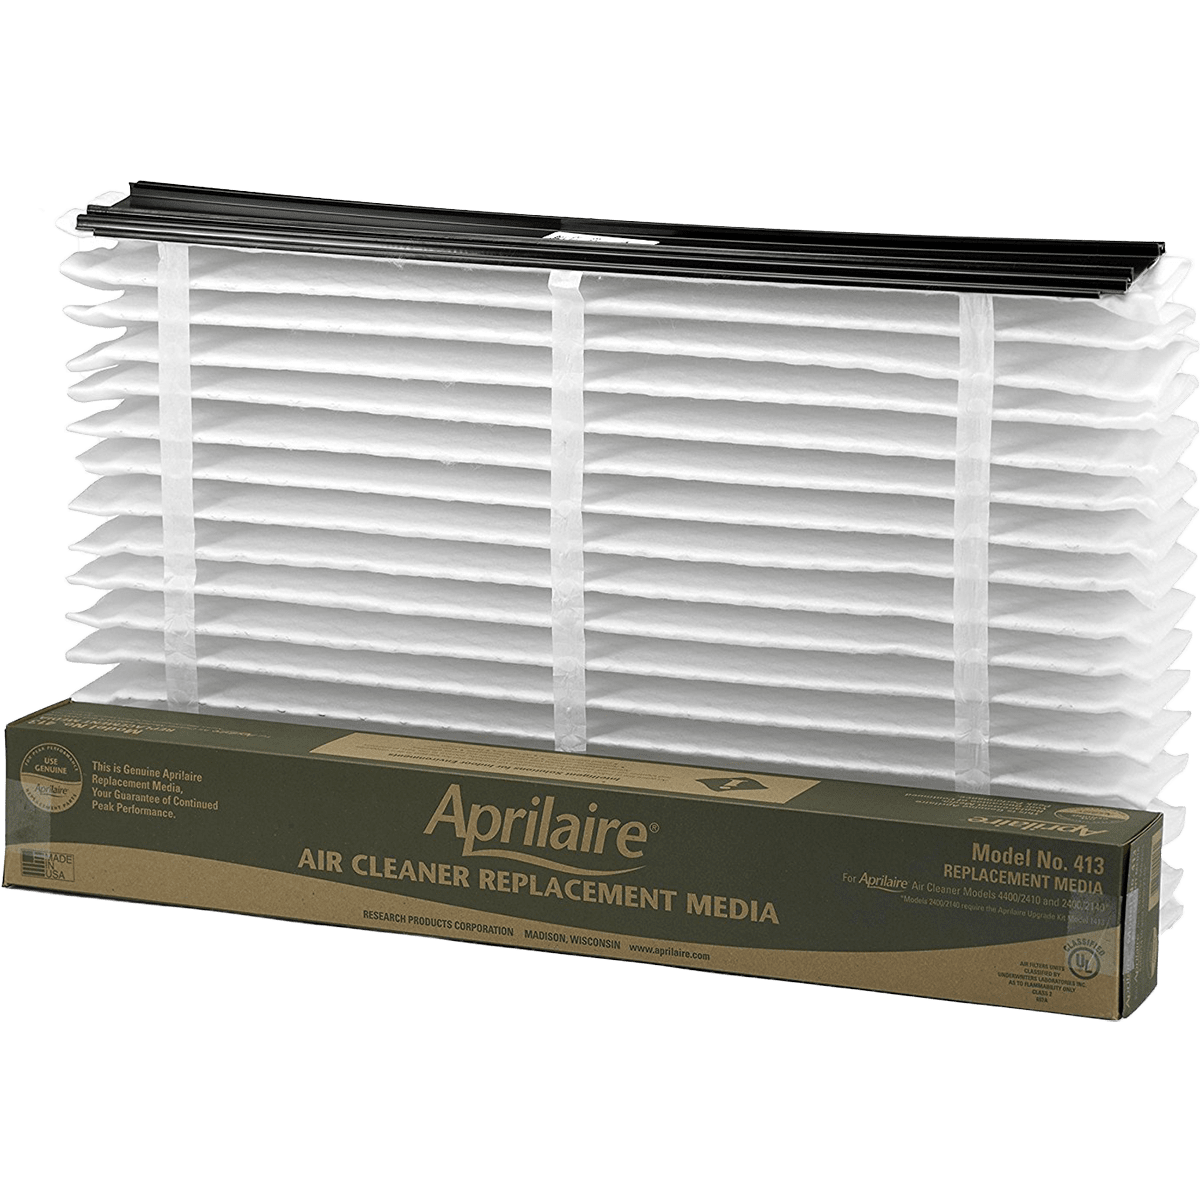 Aprilaire 413 Air Filter (MERV-13) ap4647